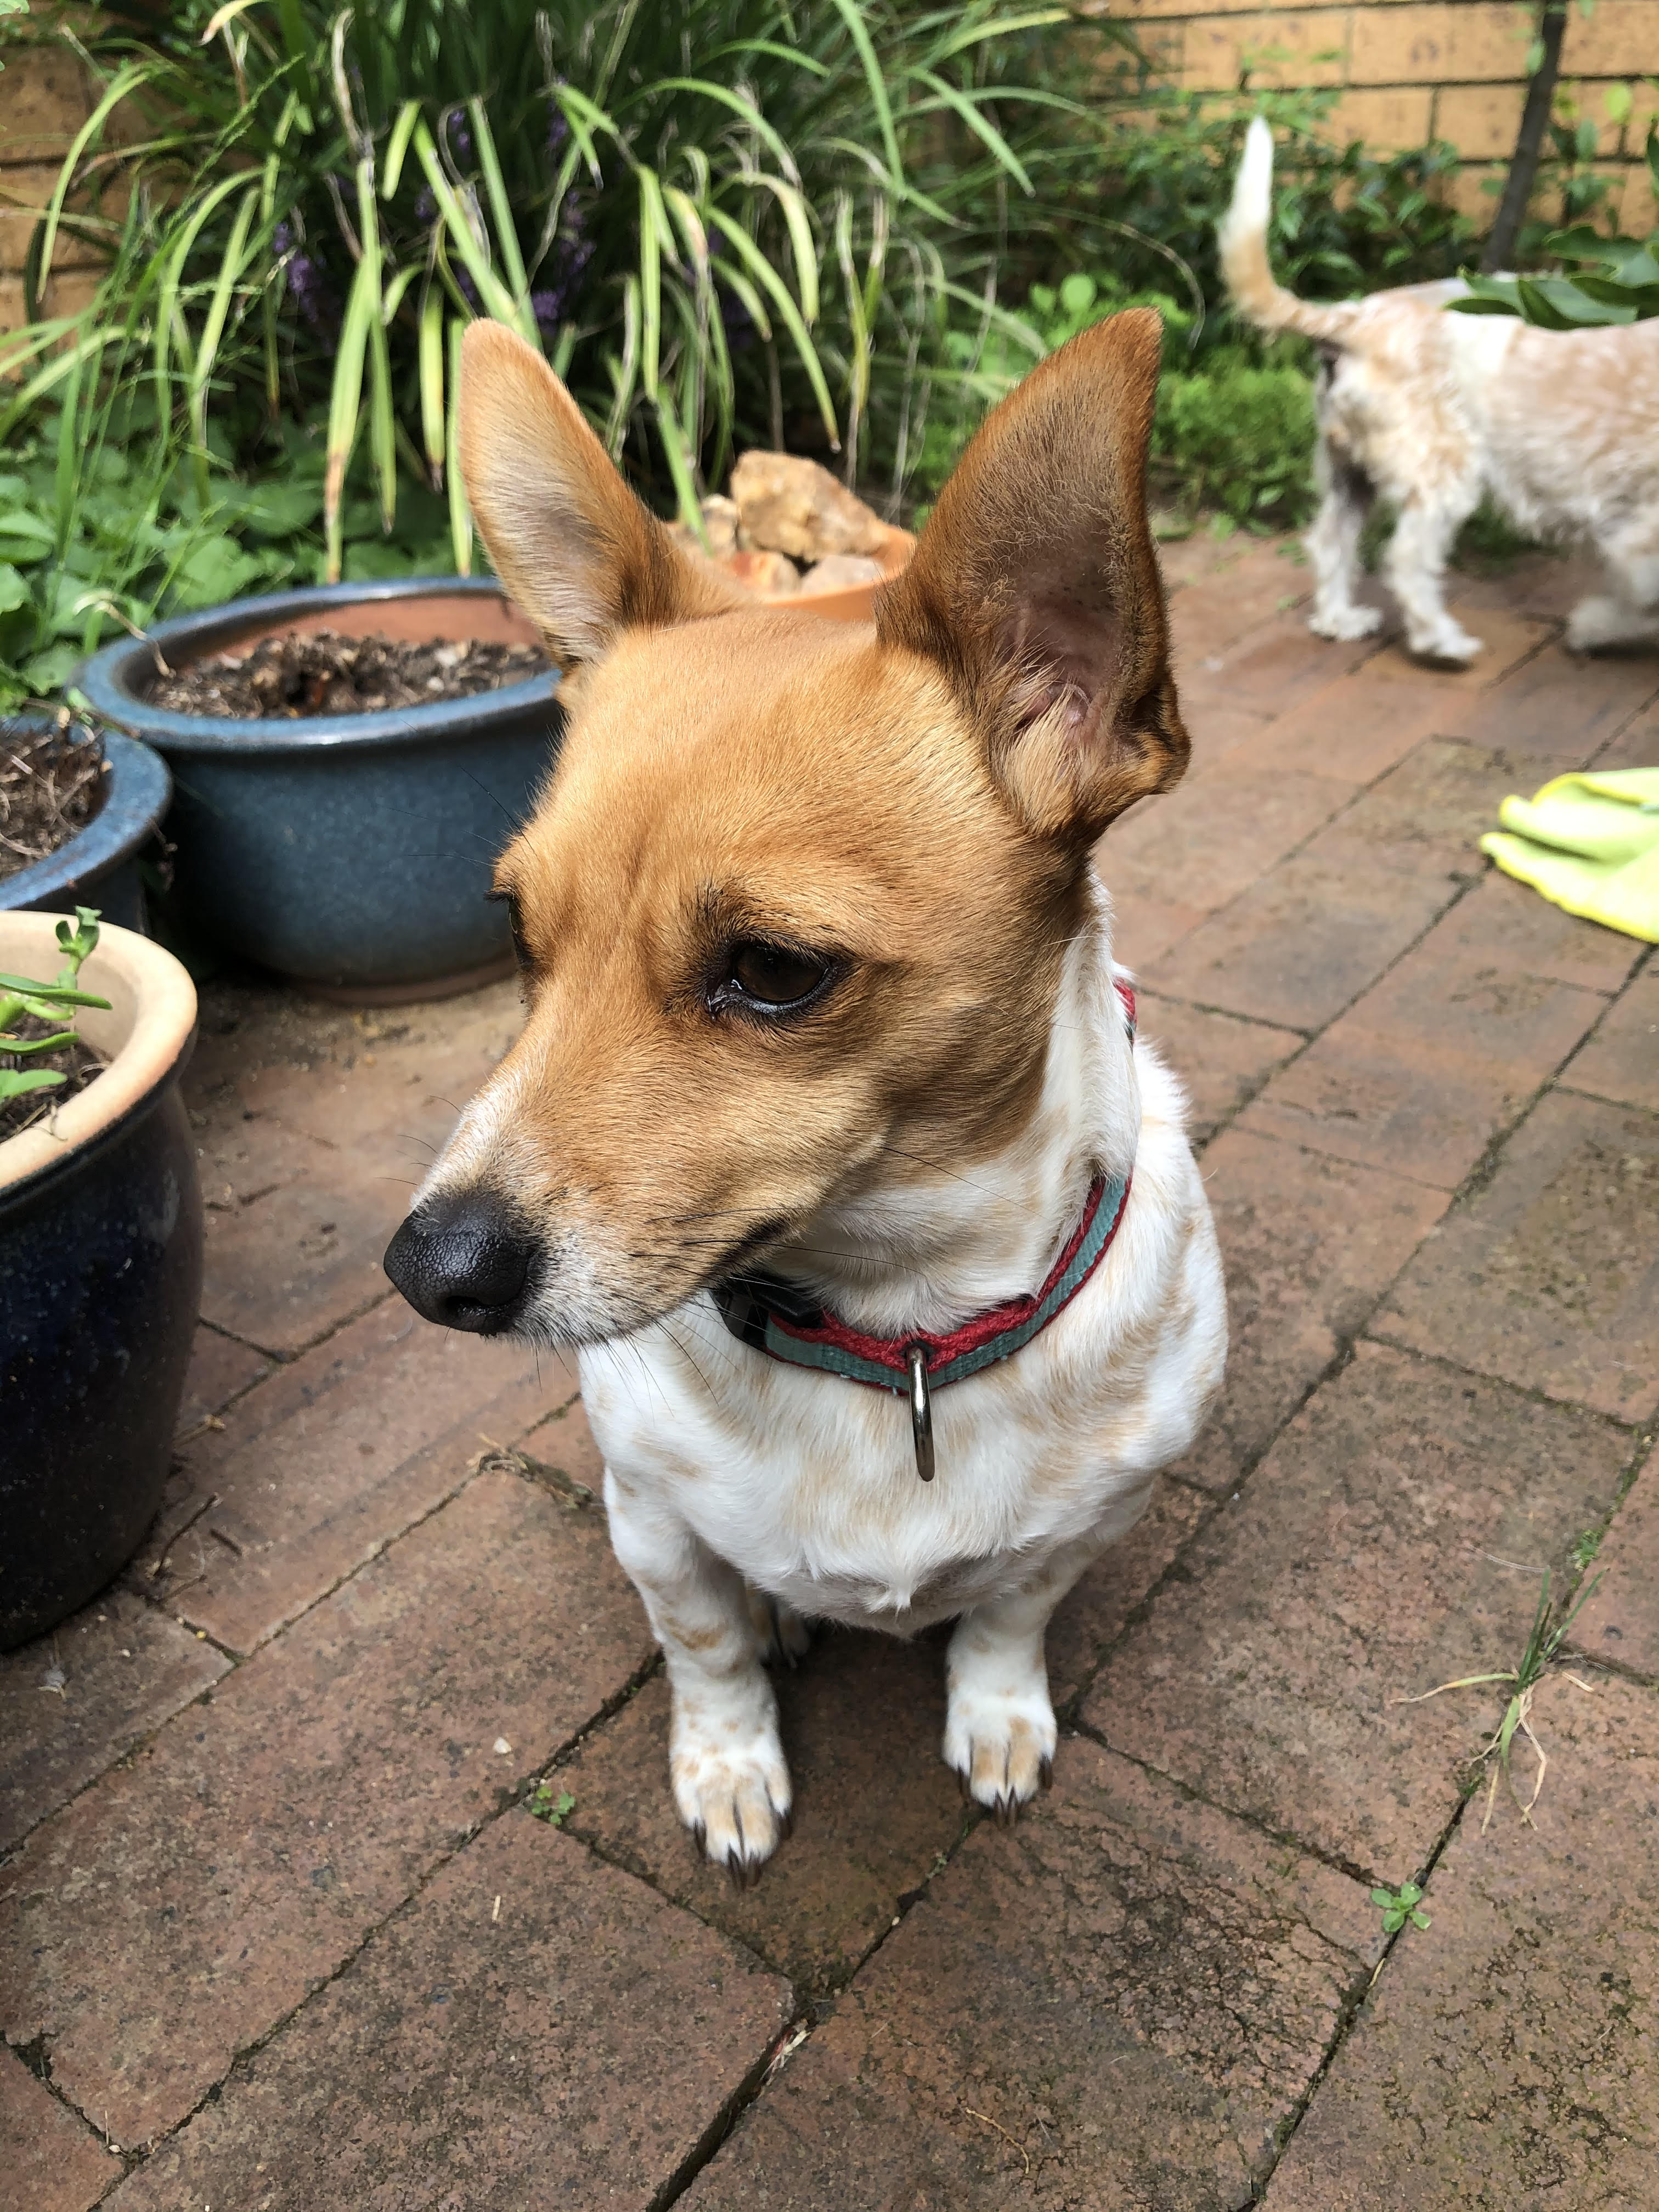 Small dog with brown face and ears and white body stands in a garden.